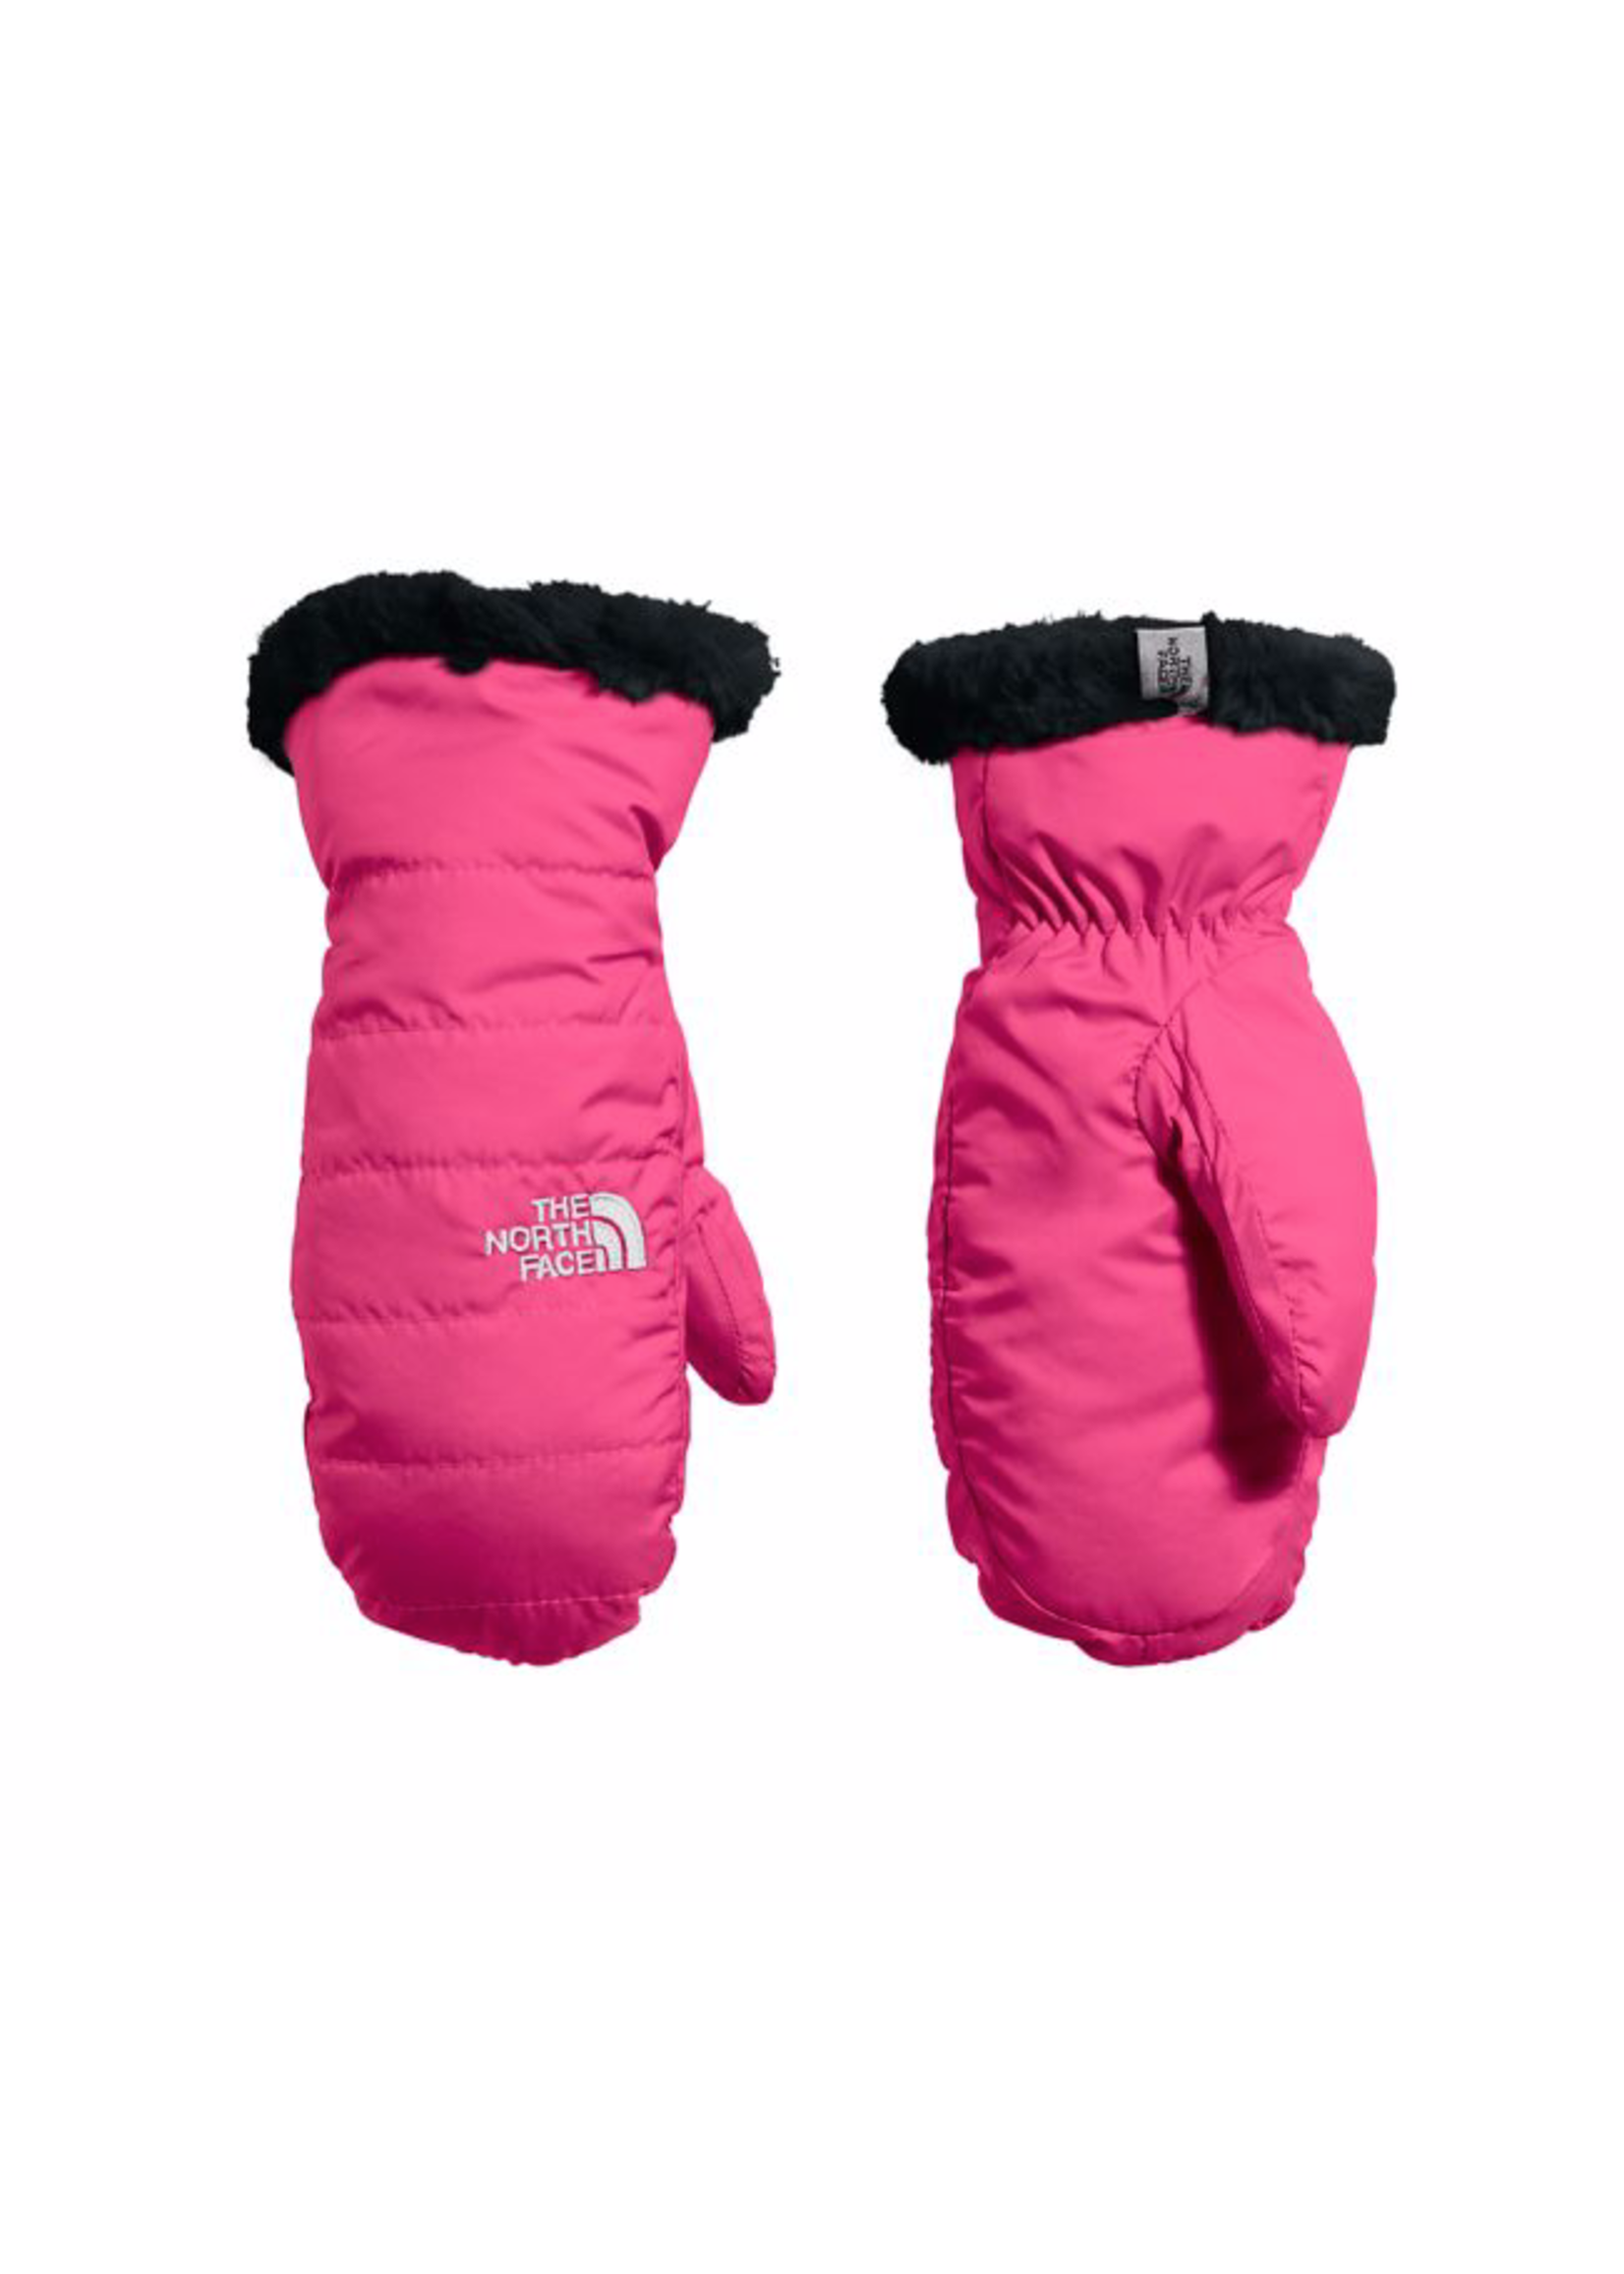 The North Face The North Face, Mossbud Swirl Reversible Mitts for Girls